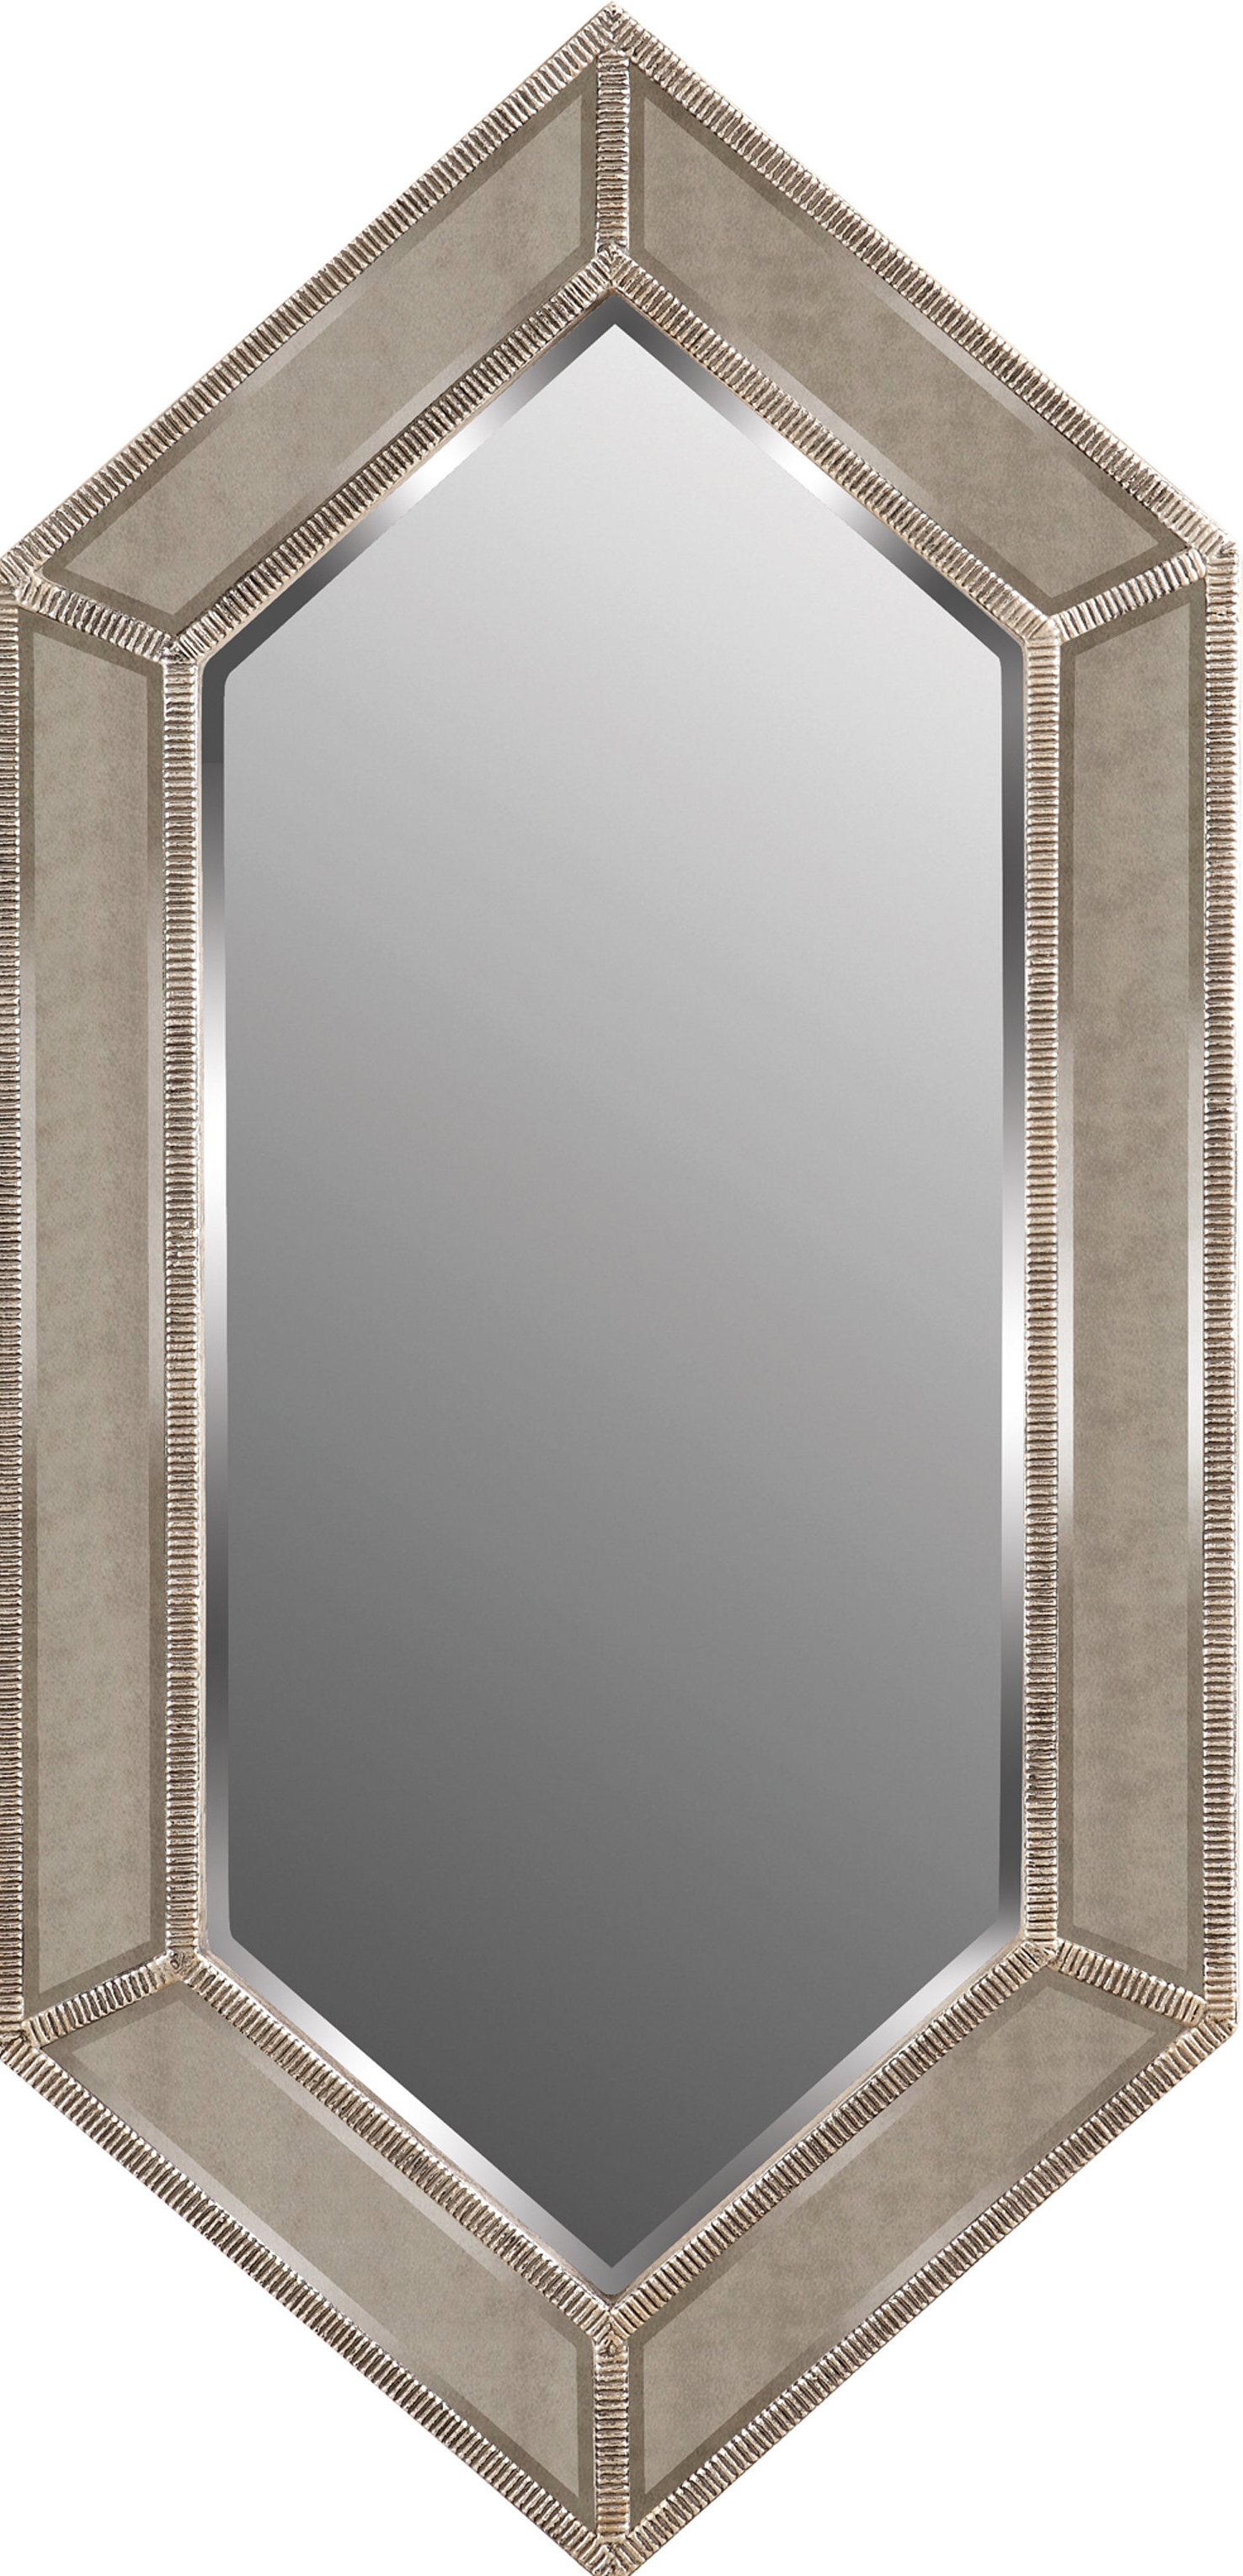 2020 Beaded Accent Wall Mirrors Pertaining To Beaded Milton Accent Wall Mirror (View 1 of 20)